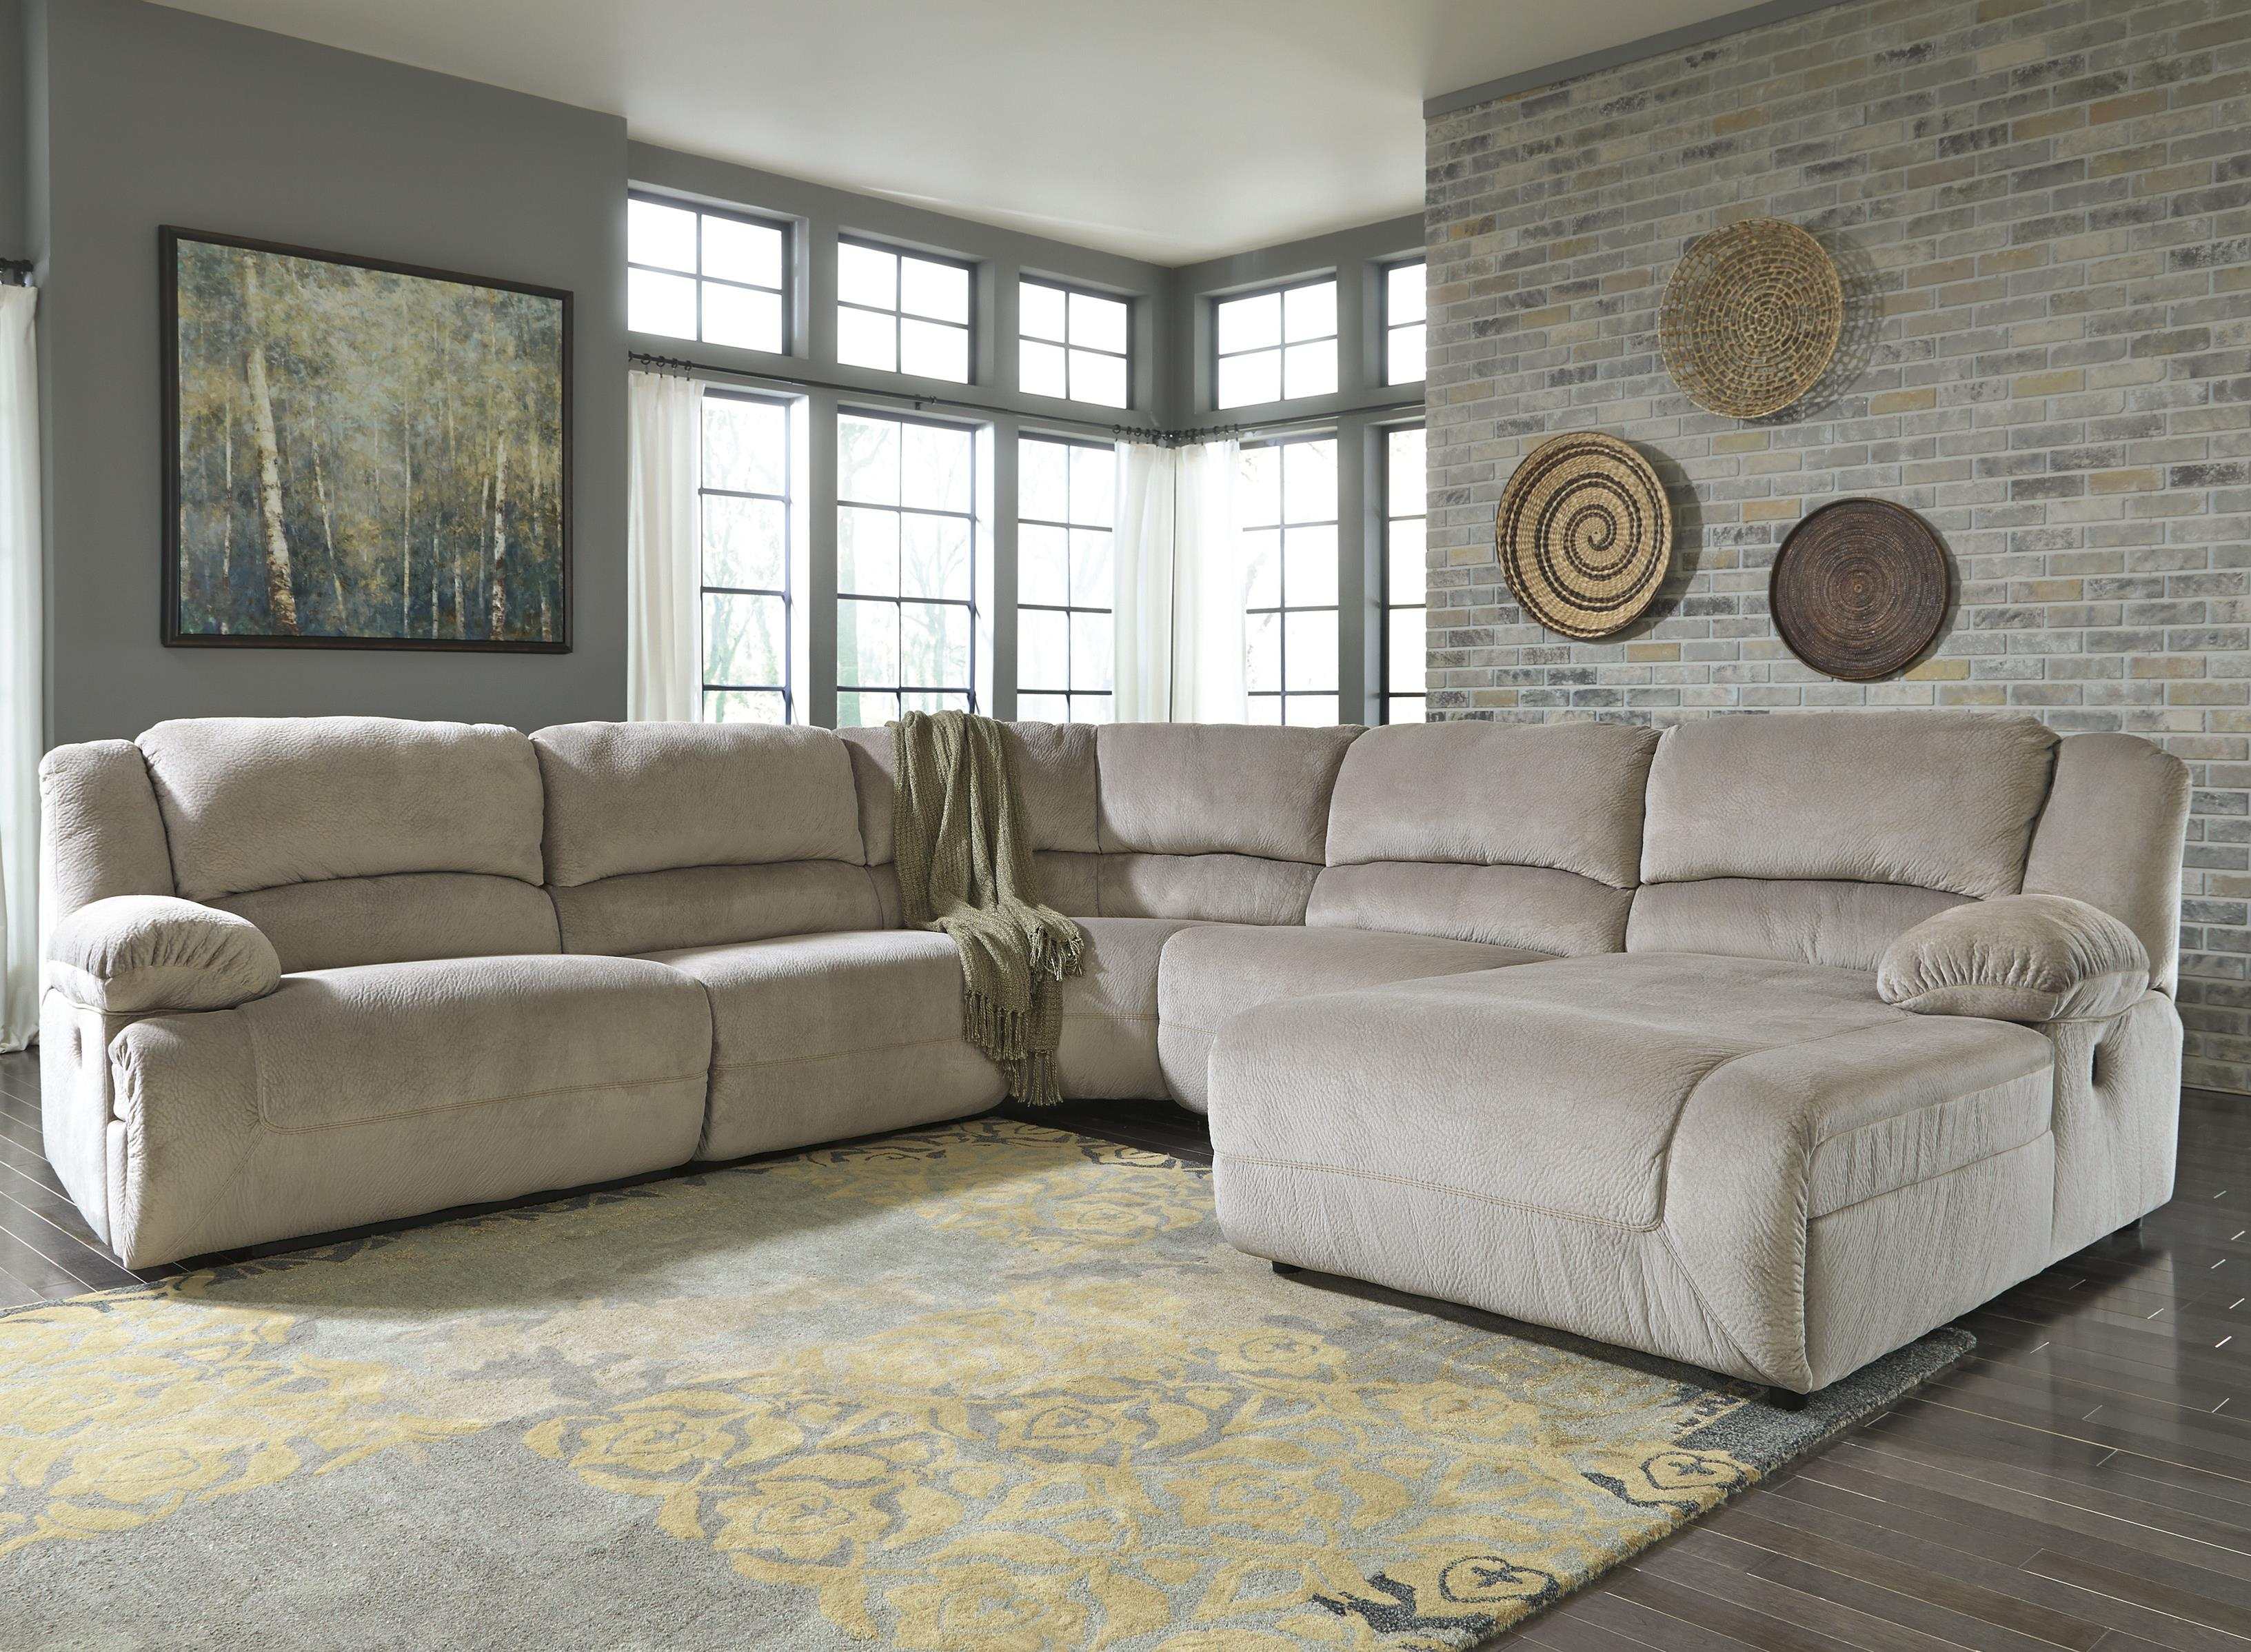 Power reclining sectional with right press back chaise by signature design by ashley wolf and gardiner wolf furniture